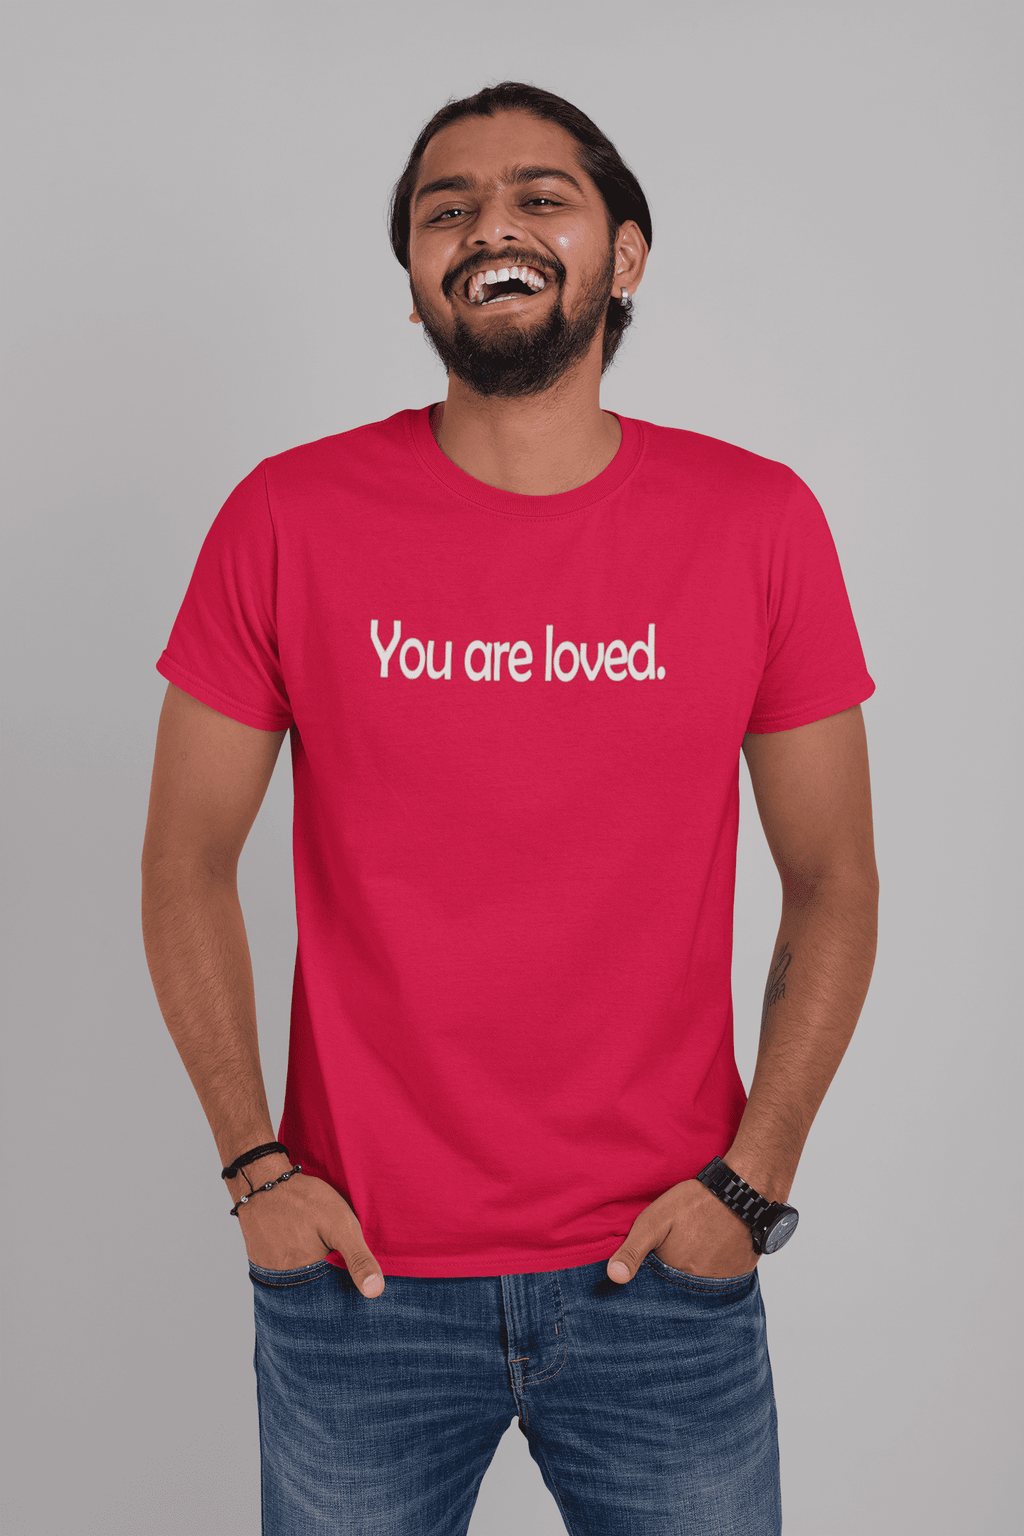 You are loved model